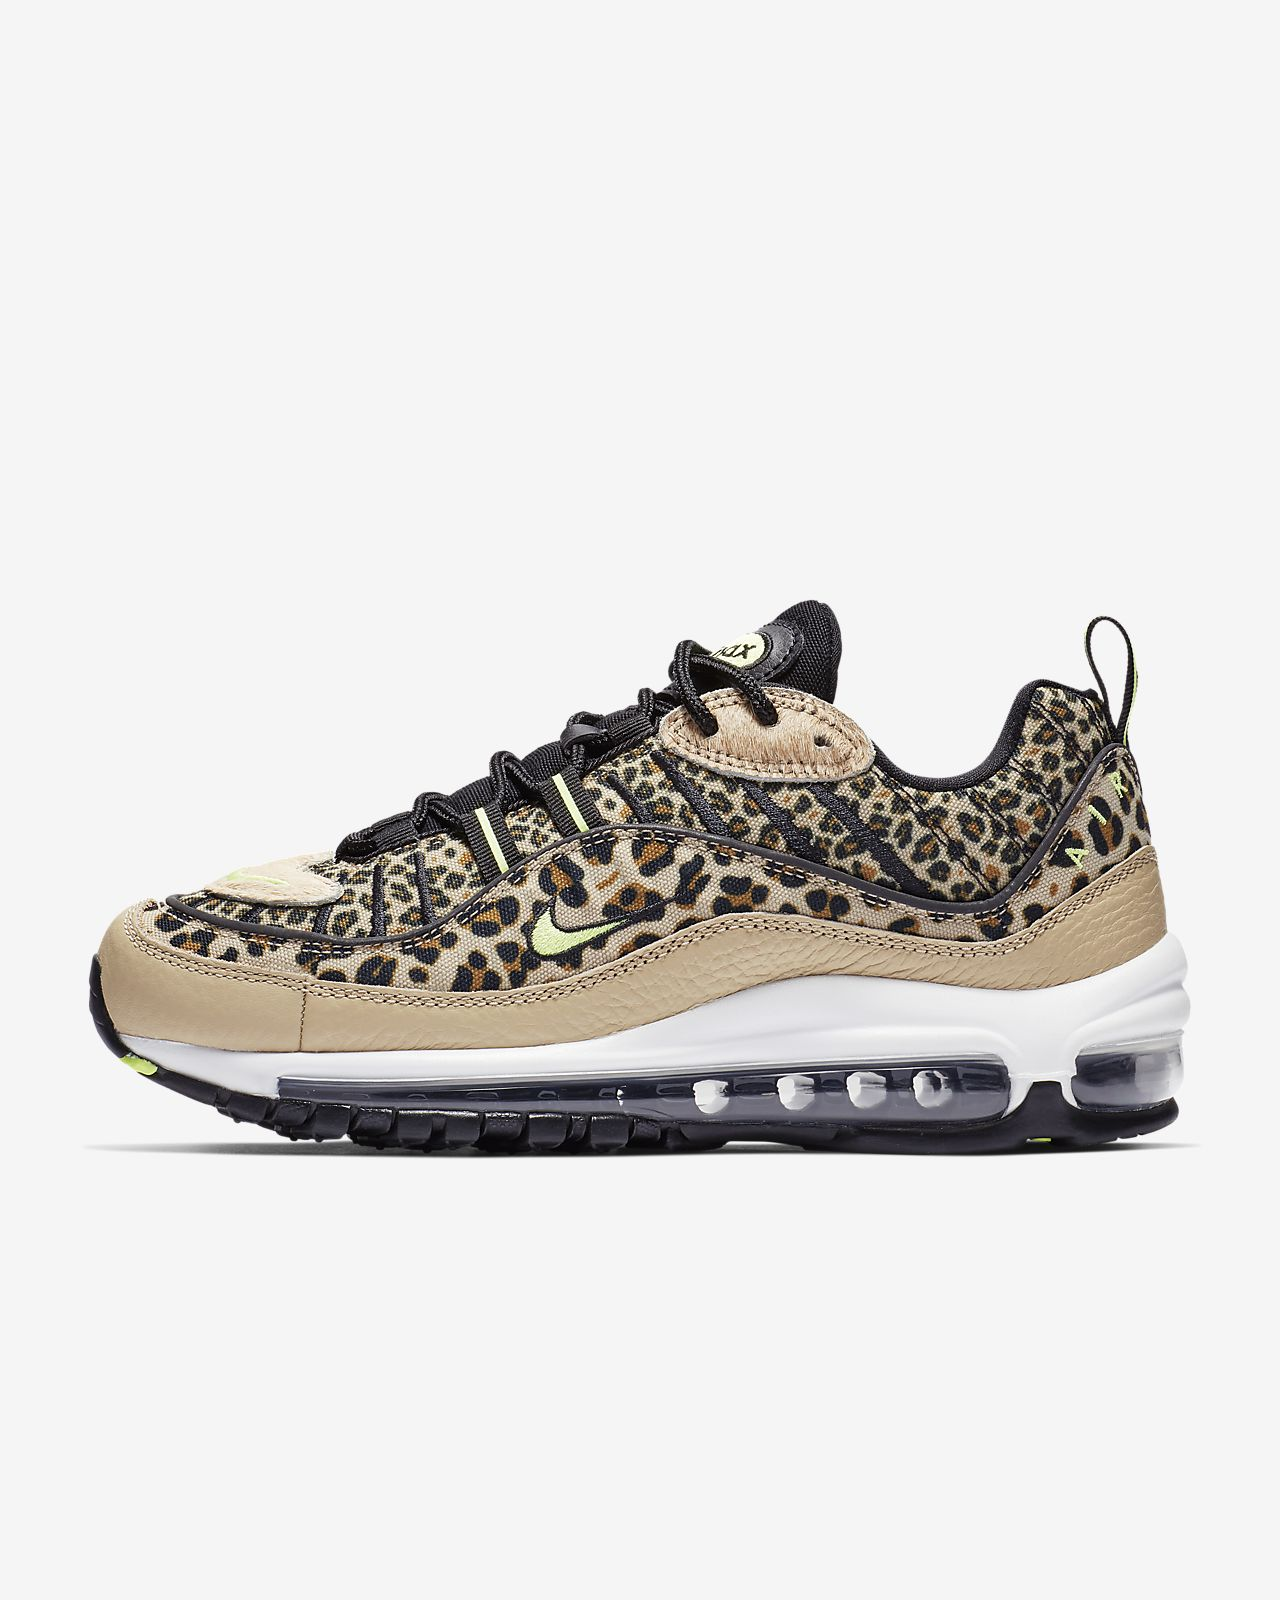 designer fashion 4a560 2b2ee Nike Air Max 98 Premium Animal